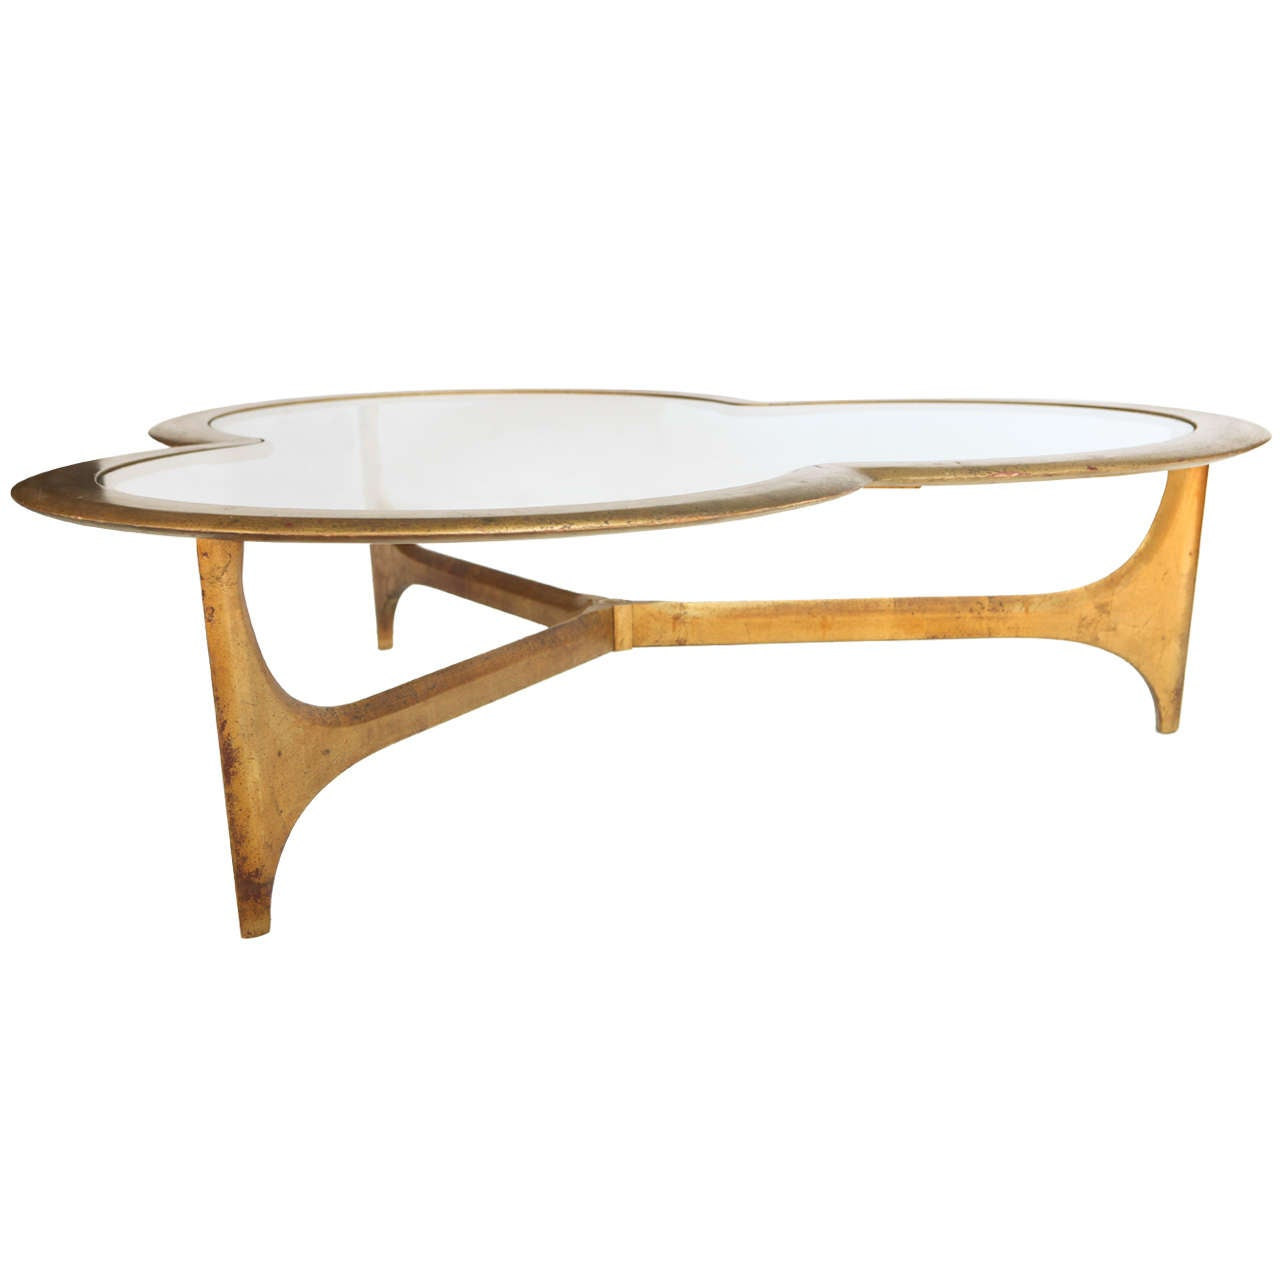 gold leaf and glass trefoil coffee table at 1stdibs